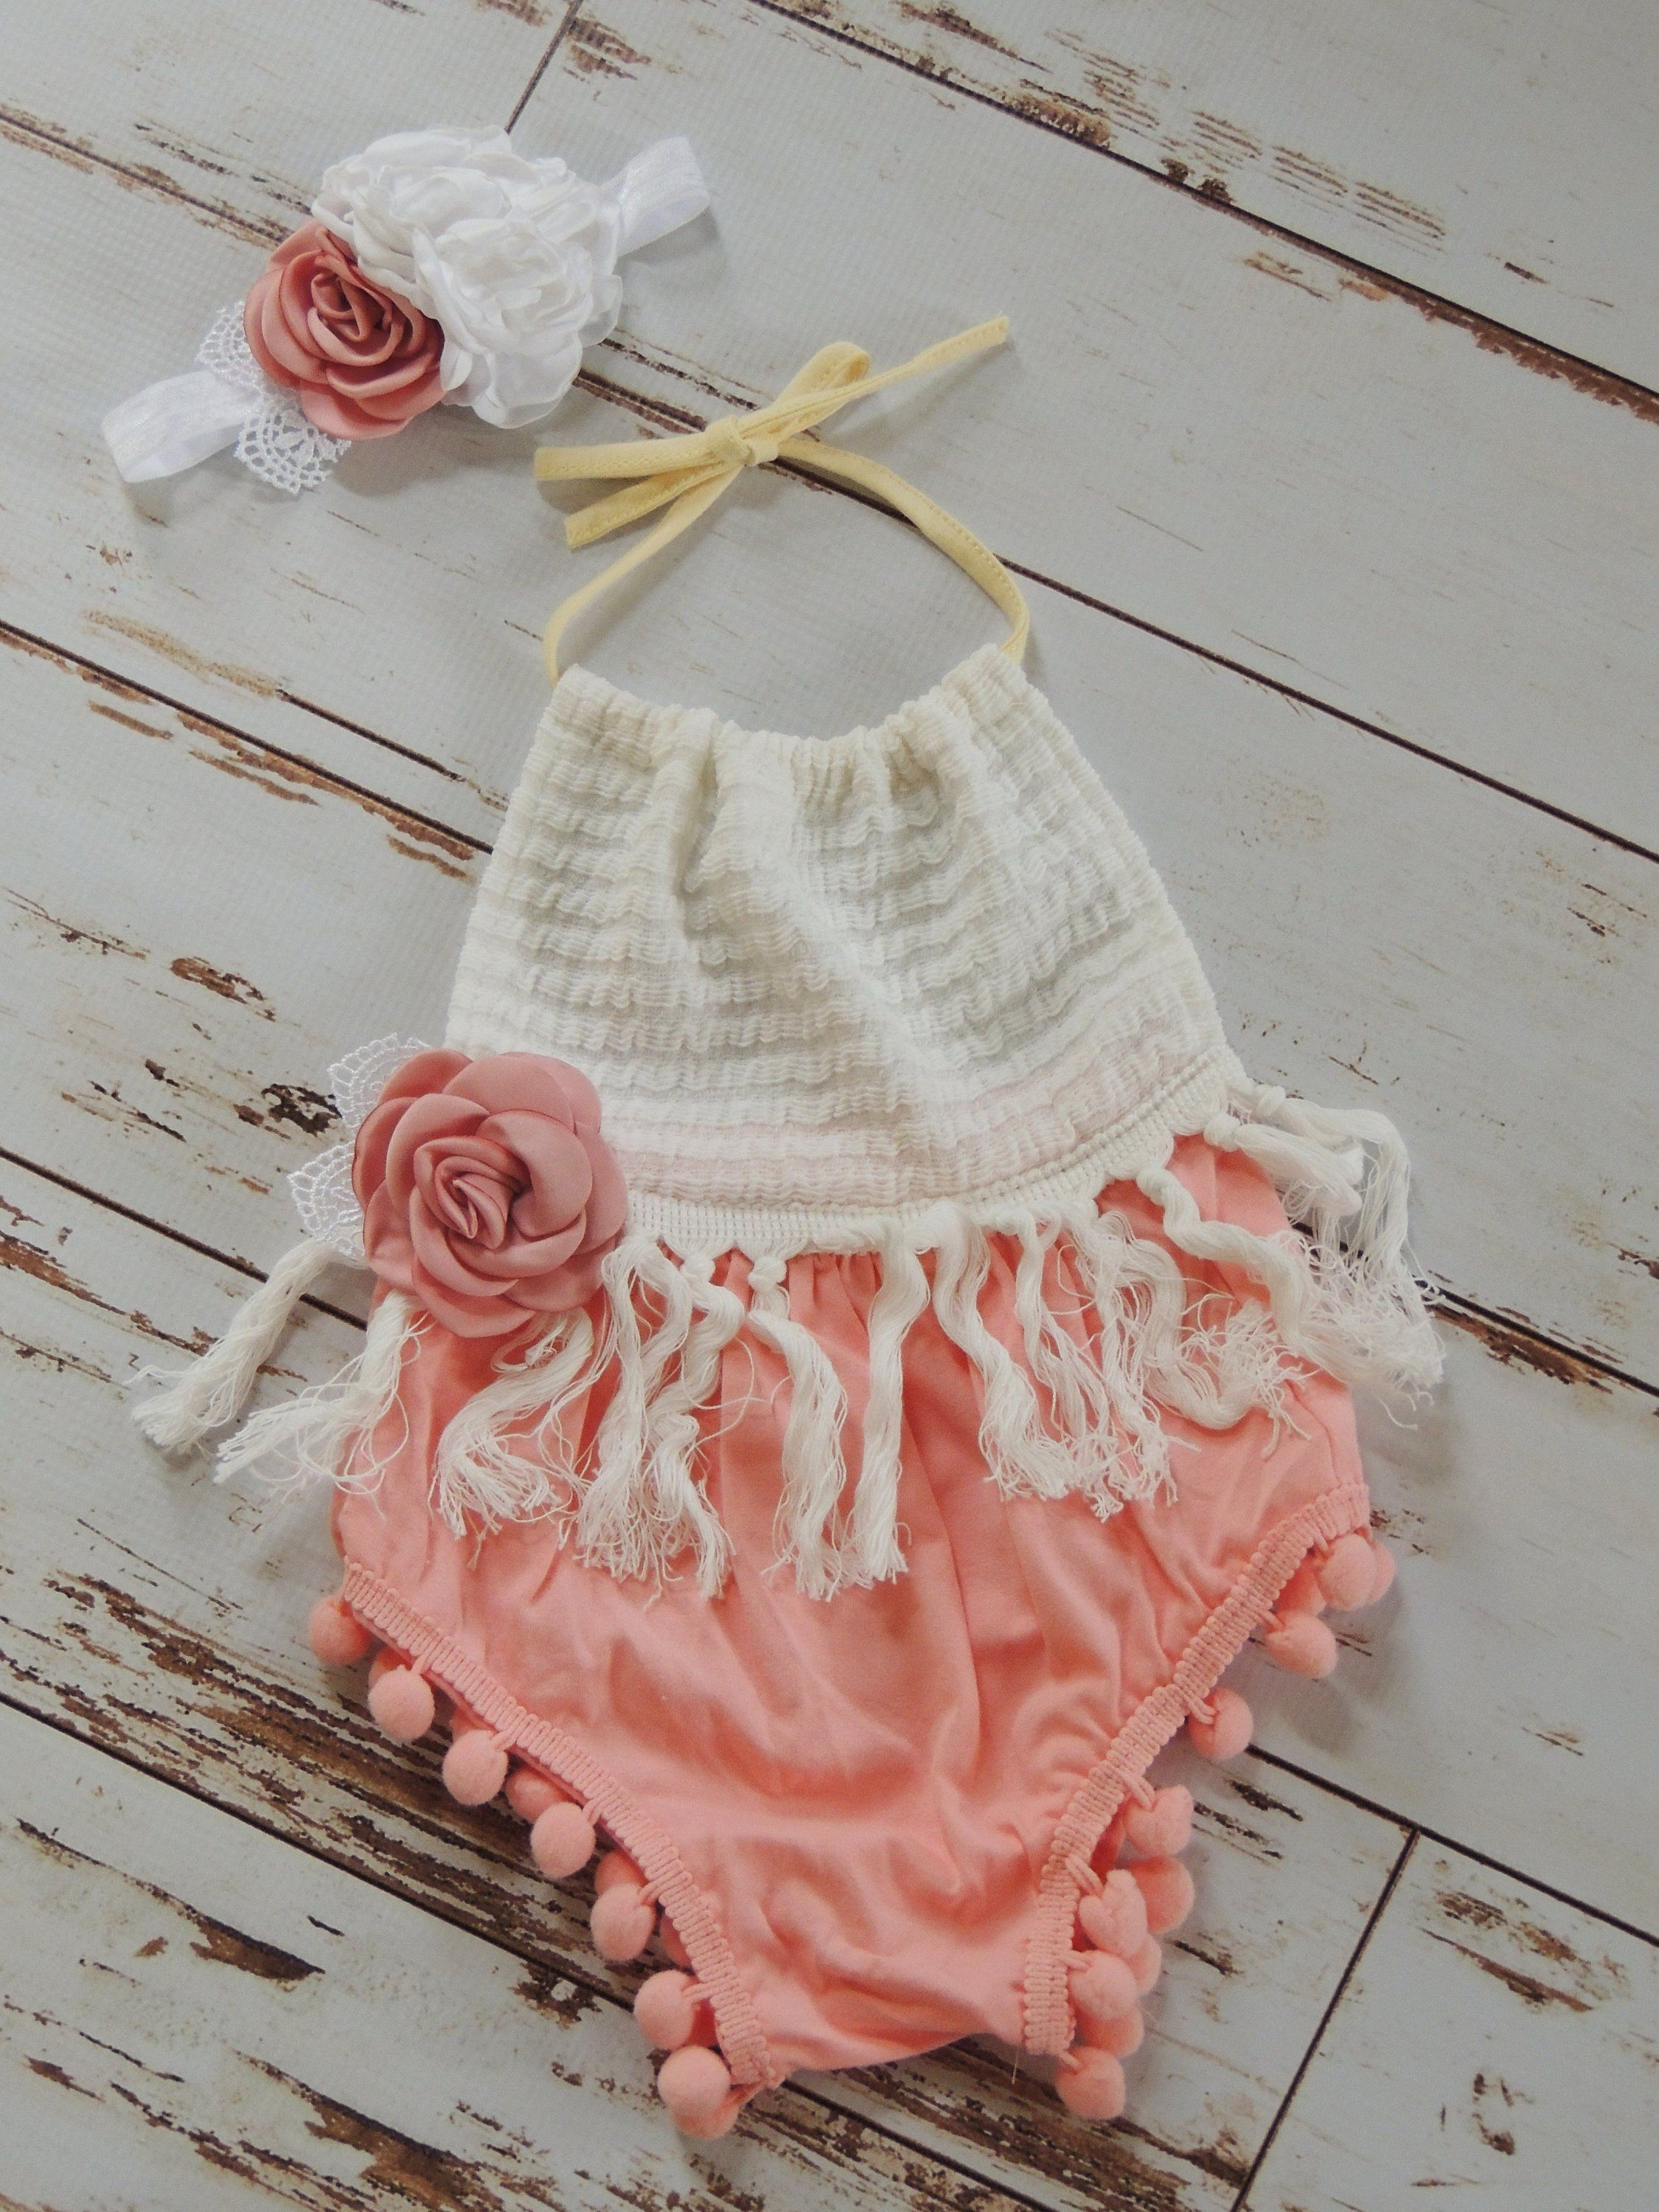 4c63edc403e7 Baby Girl Boho Romper Birthday Outfit Boho Baby Girl Wild One Birthday  Cakesmash Outfit Baby Girl Romper First Birthday GIrl Romper by JadeandJo  on Etsy